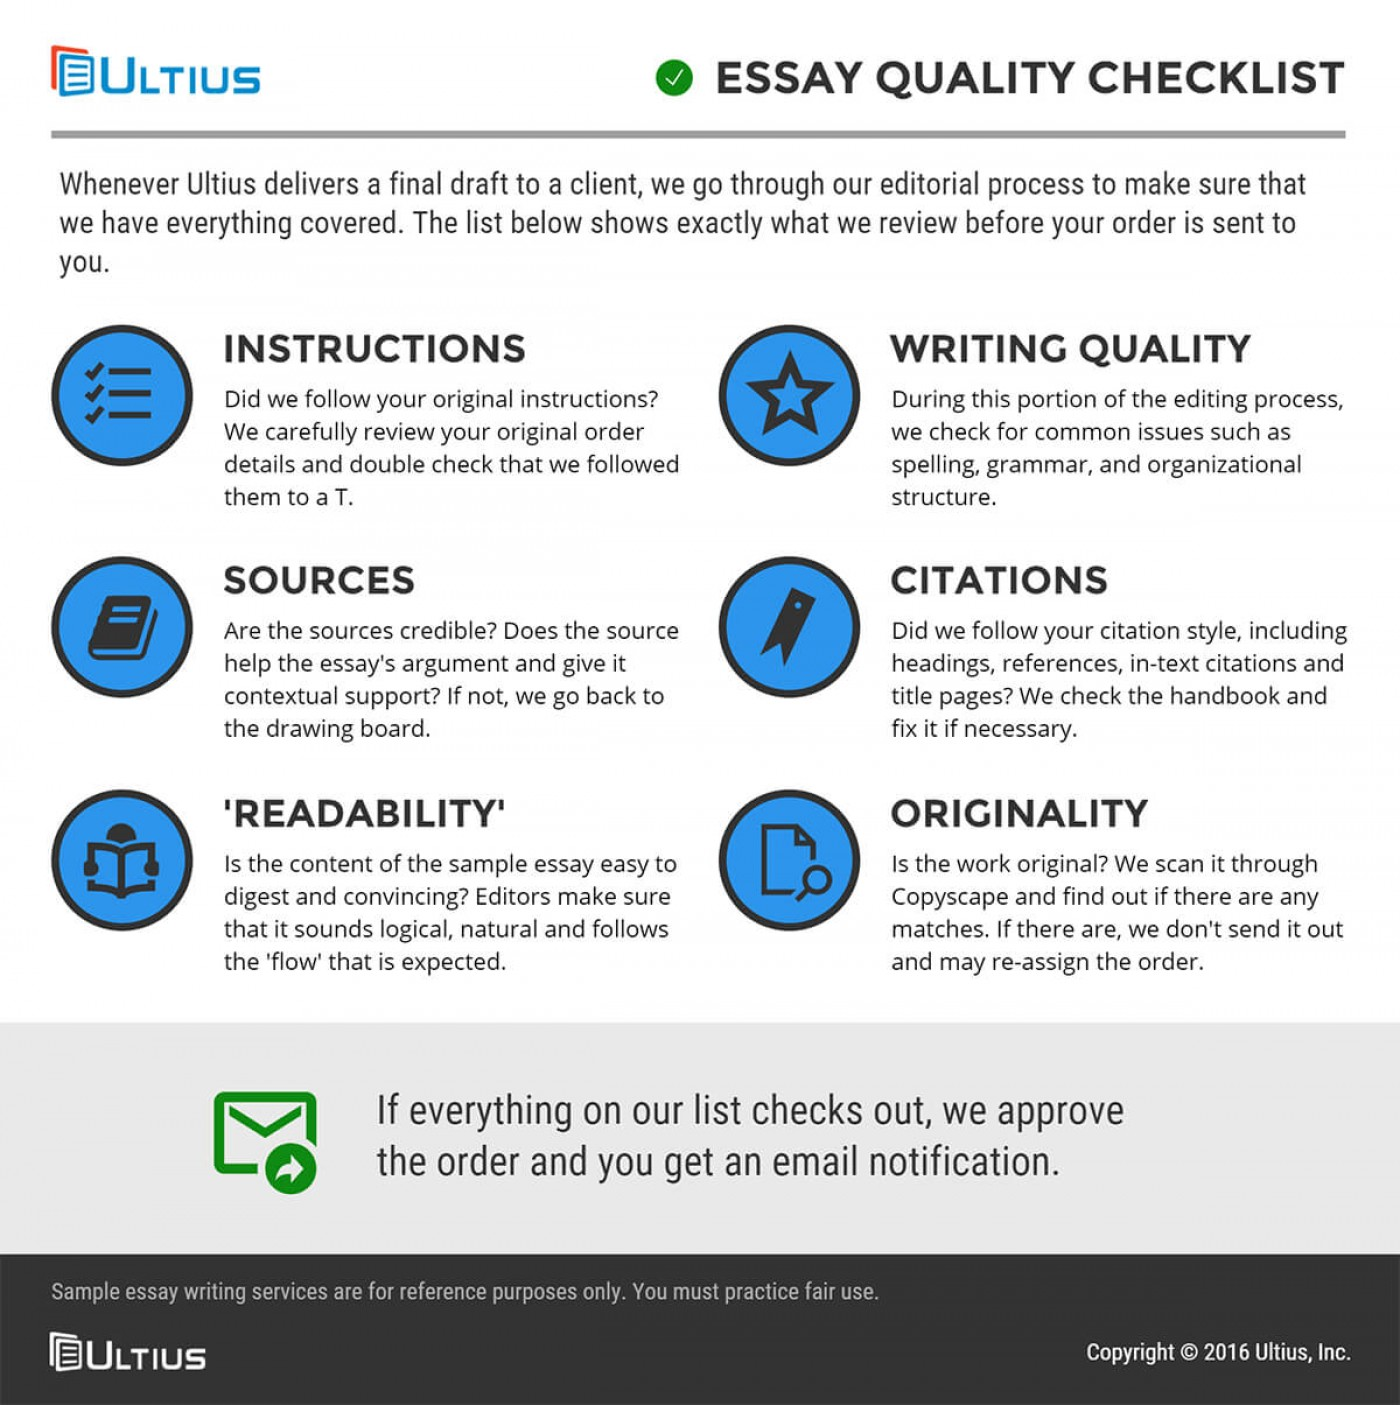 001 Essay Online Example Quality Unbelievable On Shopping Is Good Or Bad Help Free Chat Grader Jobs 1400